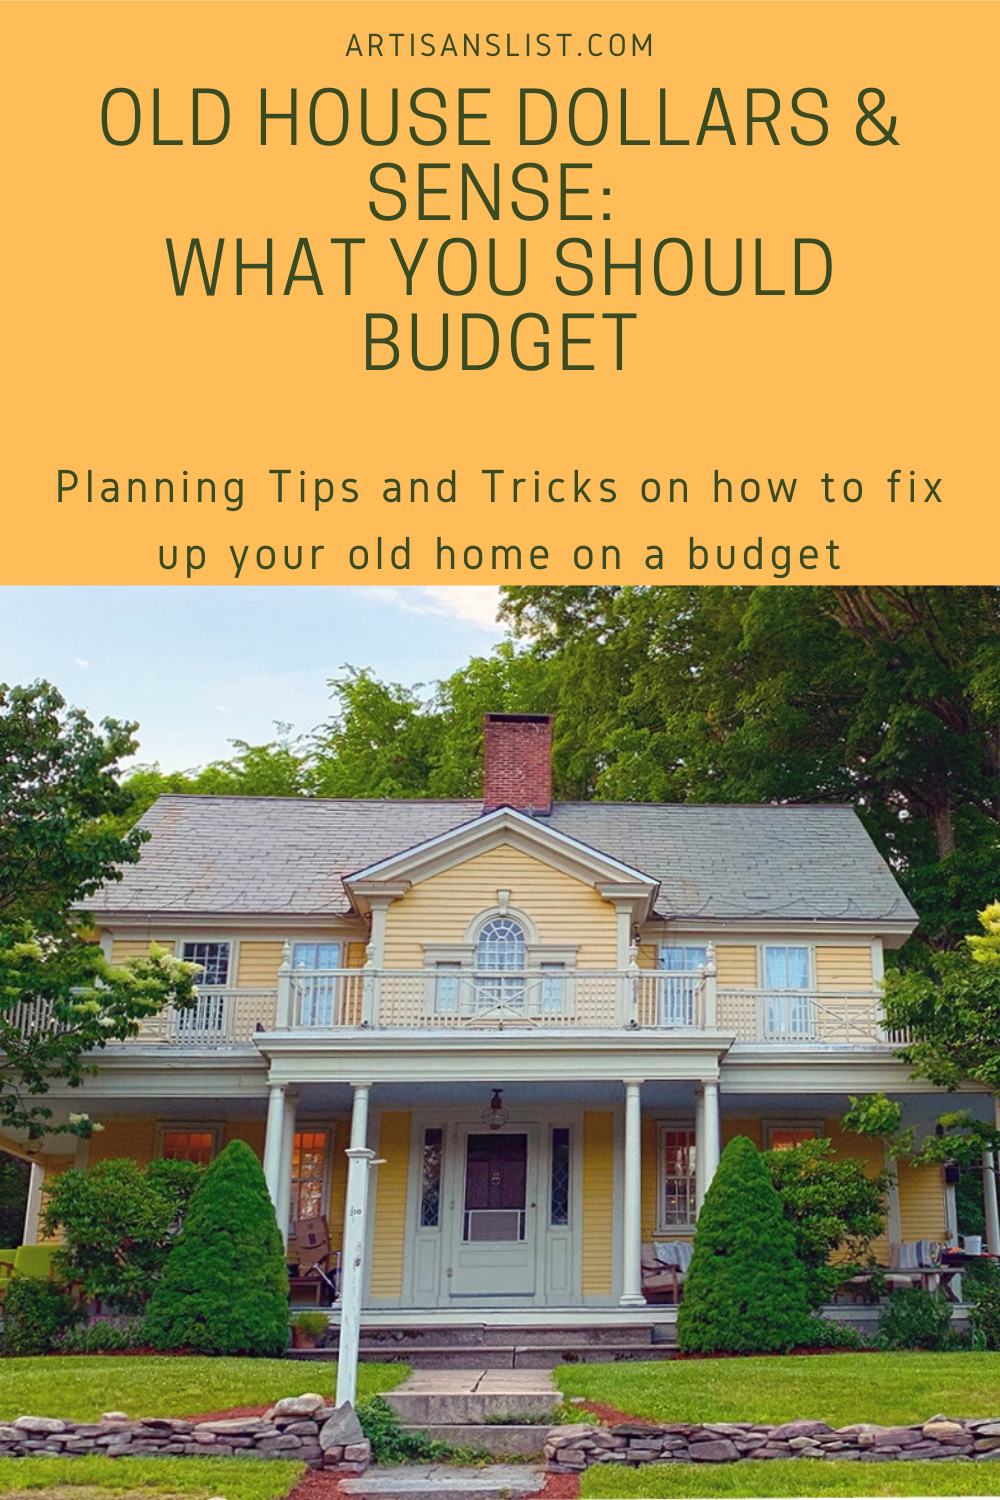 Budget tips for fixing up your old house #oldhouse #vintagehome #budget #diy